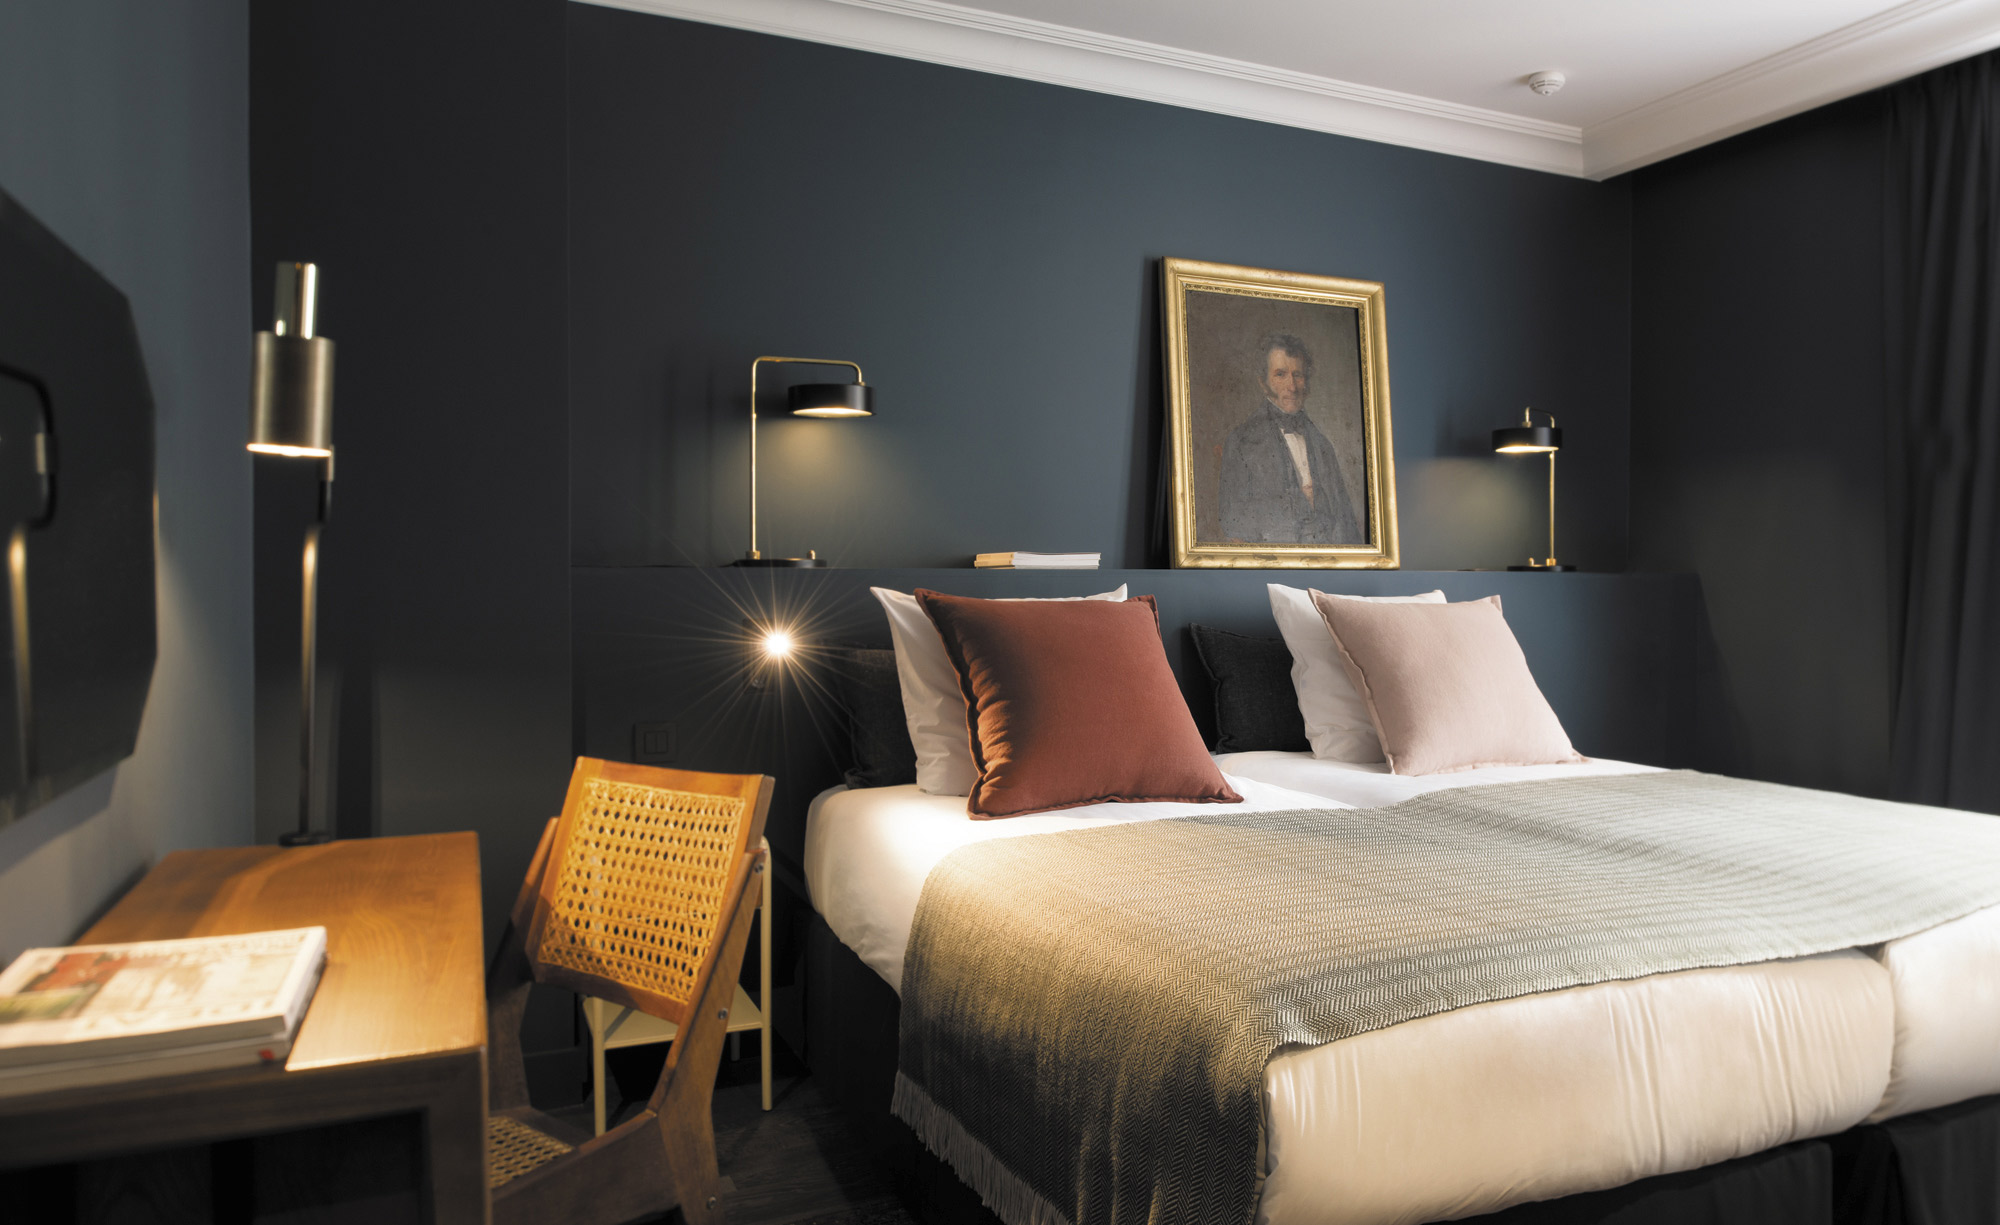 C o q hotel review paris france wallpaper for Hotel design paris 3eme